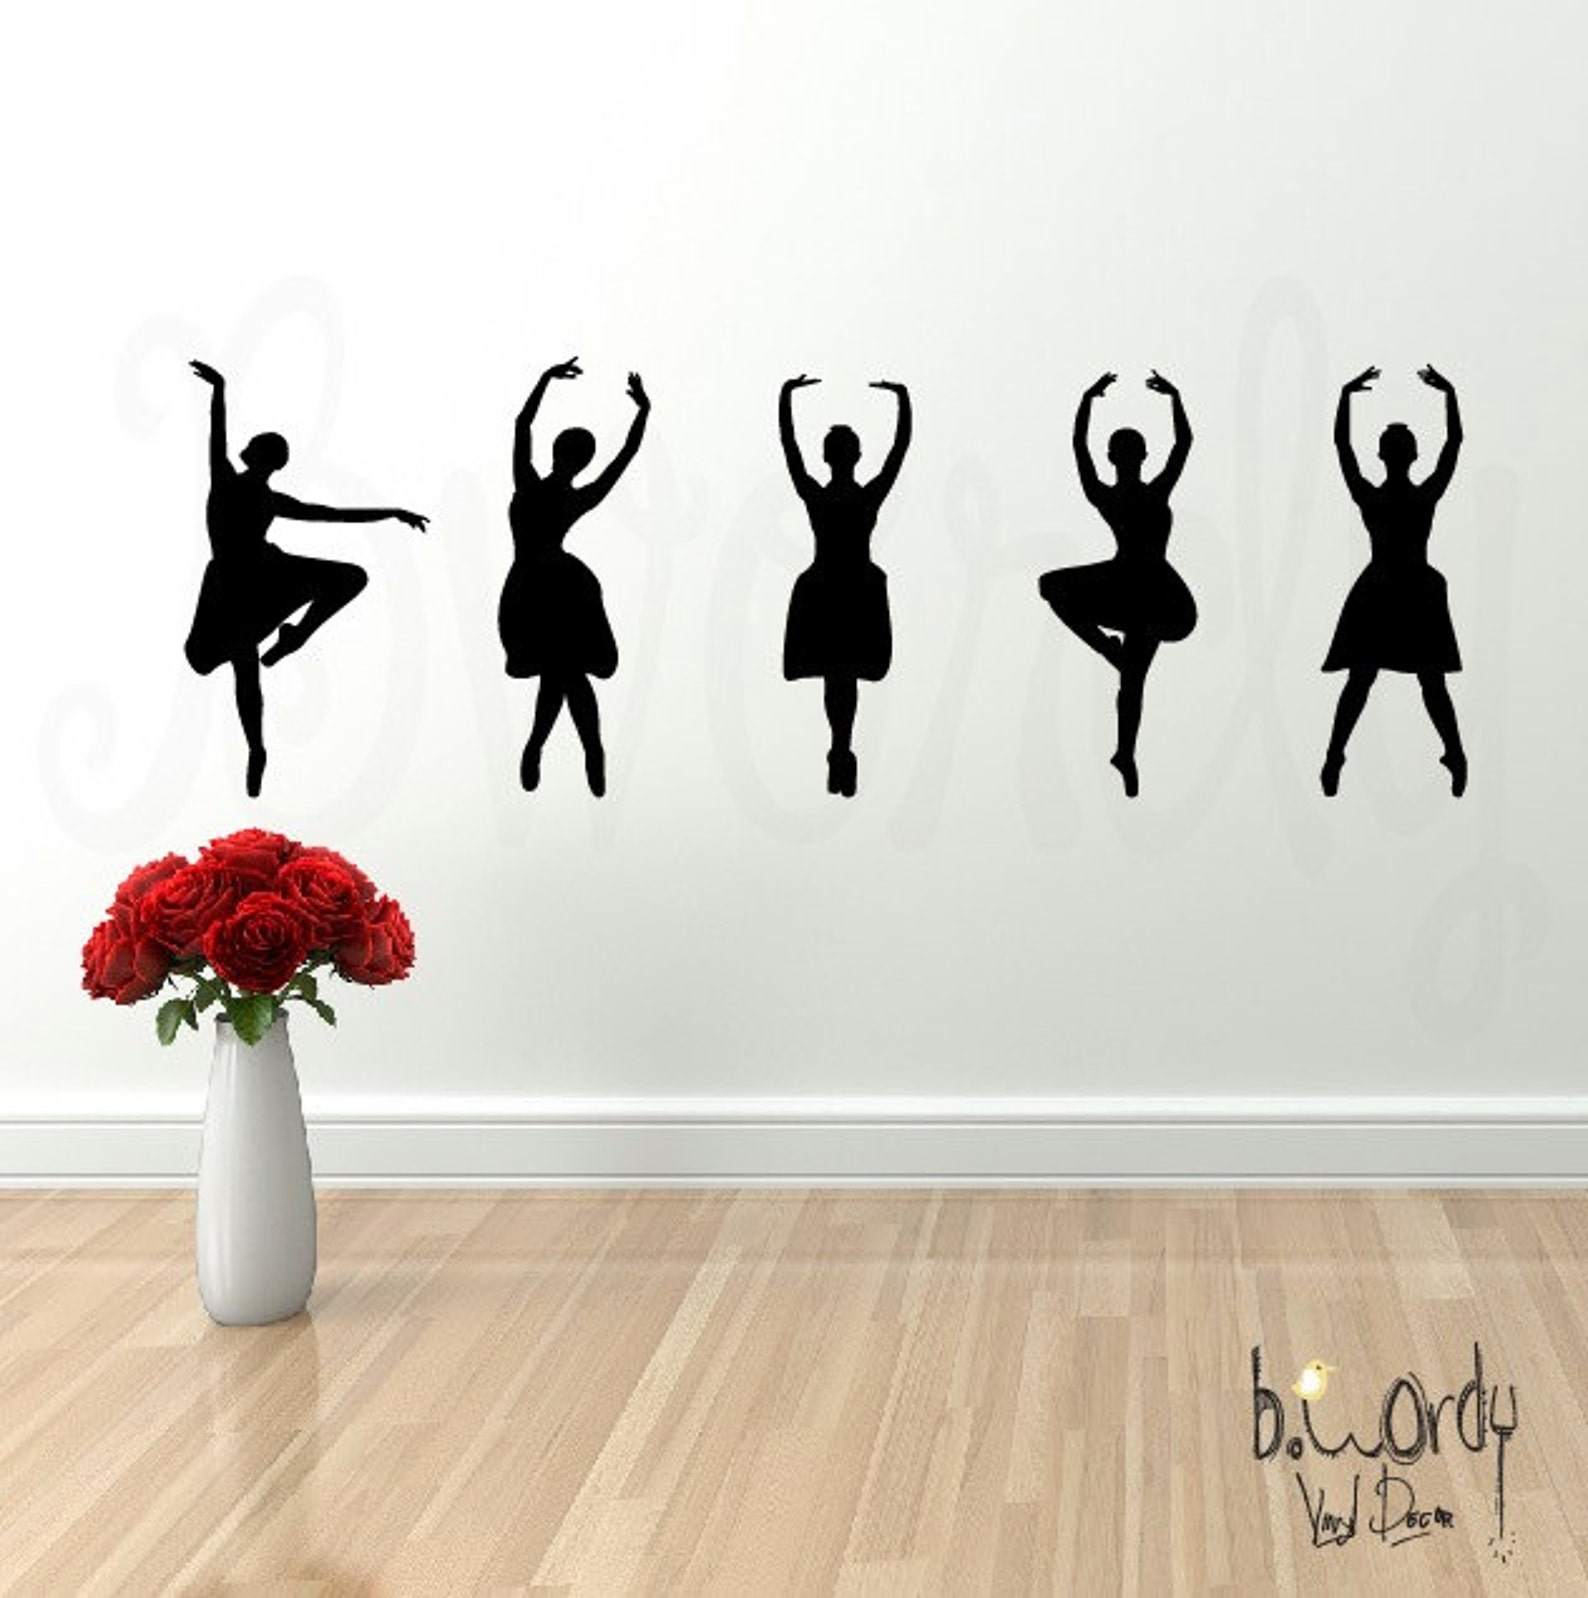 vinyl wall decal, dancing silhouettes, - wall lettering, bedroom decor, dancer,ballet, sticker